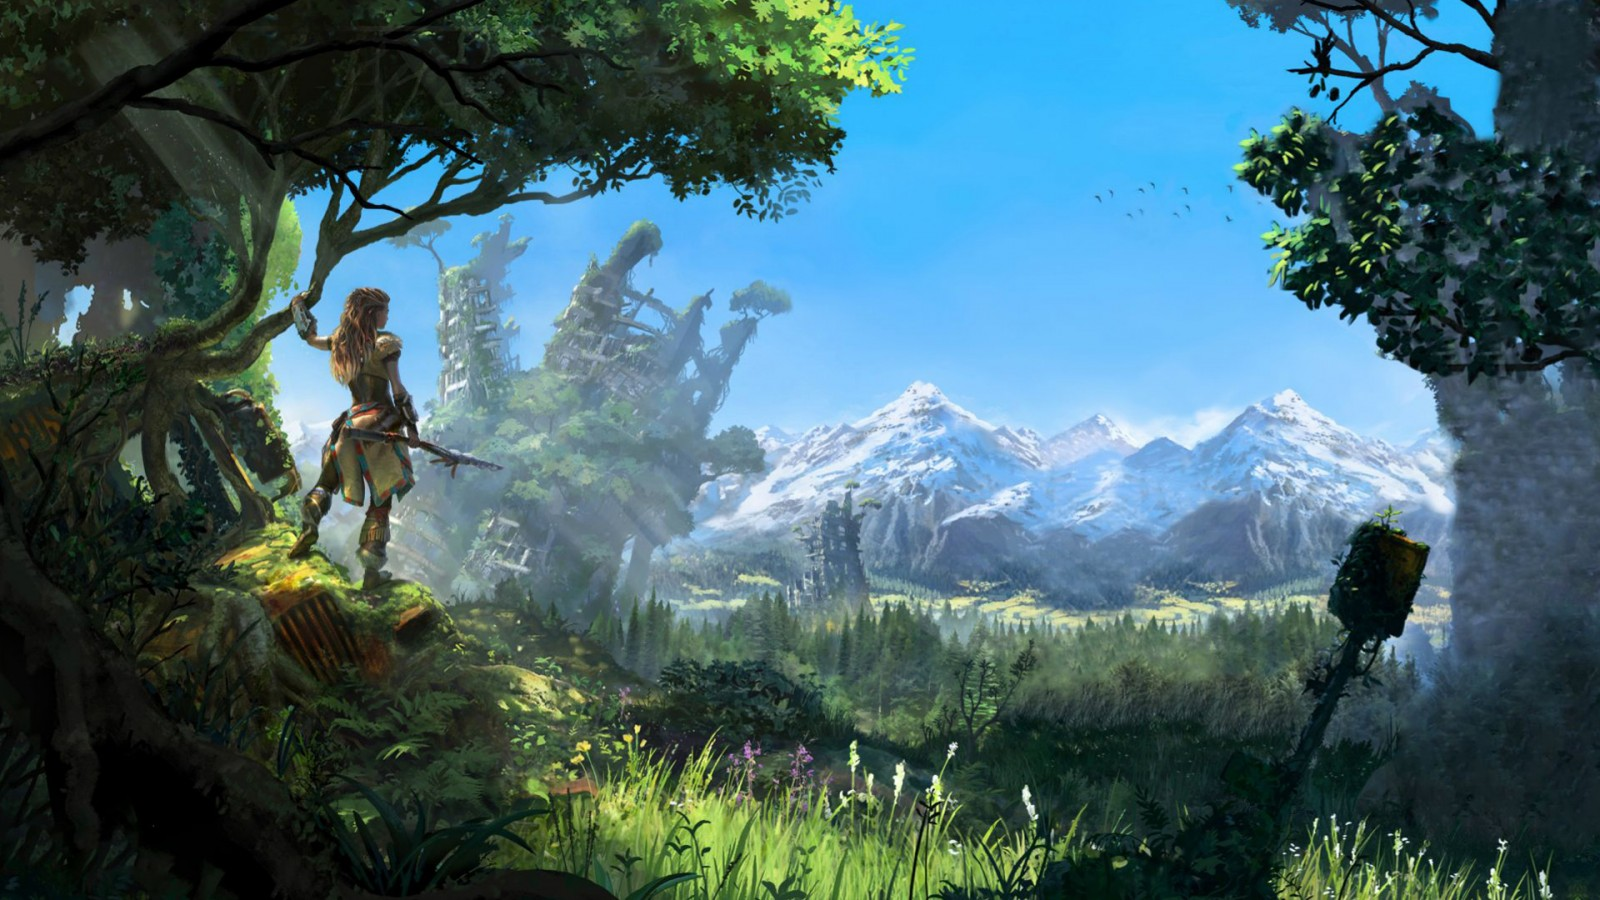 Hd Android Wallpapers 3d Horizon Zero Dawn 2016 Game Wallpapers Hd Wallpapers